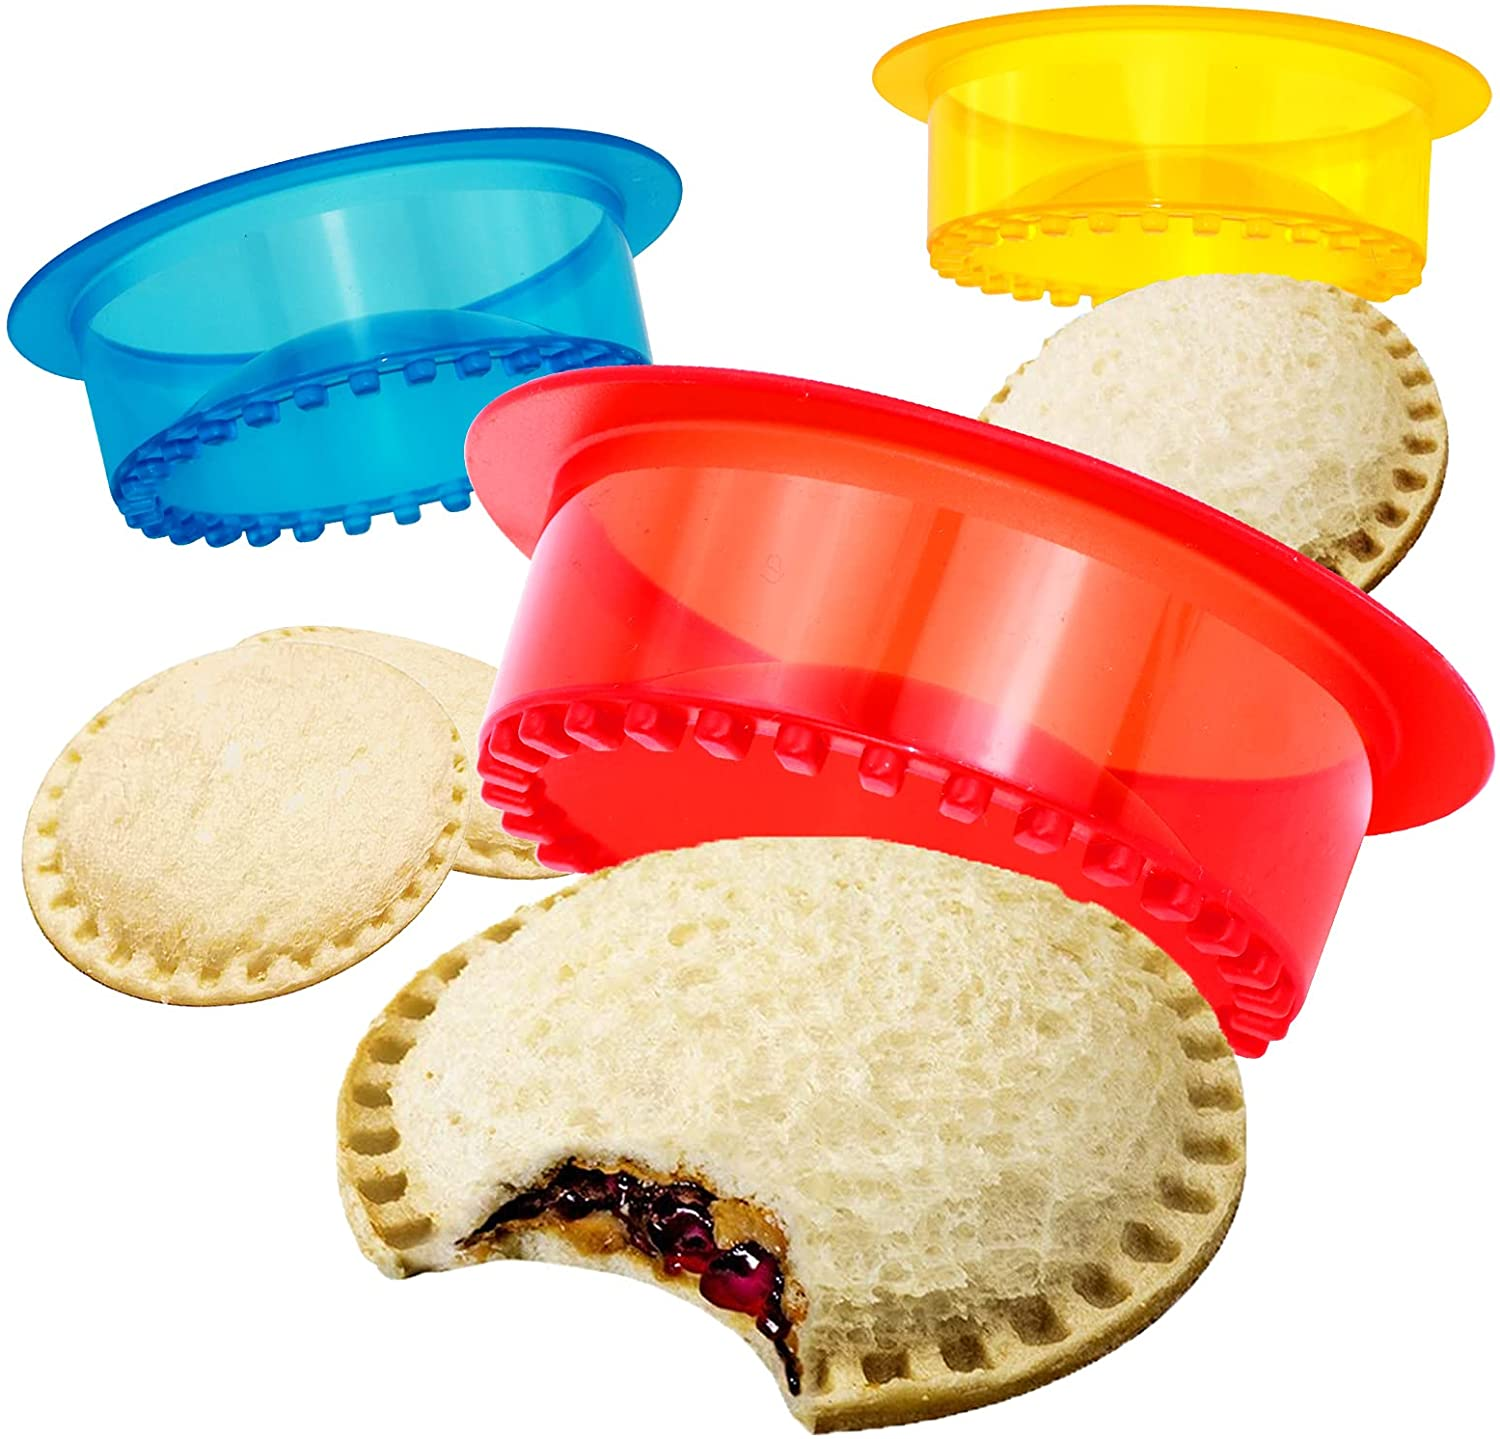 HiYZ Sandwich Cutter and Sealer, Pack of 5 Uncrustables Sandwich Maker for Kids, Bread Sandwich Decruster Pancake Maker DIY Cookie Cutter for Boys and Girls Lunch Lunchbox and Bento Box(Red)